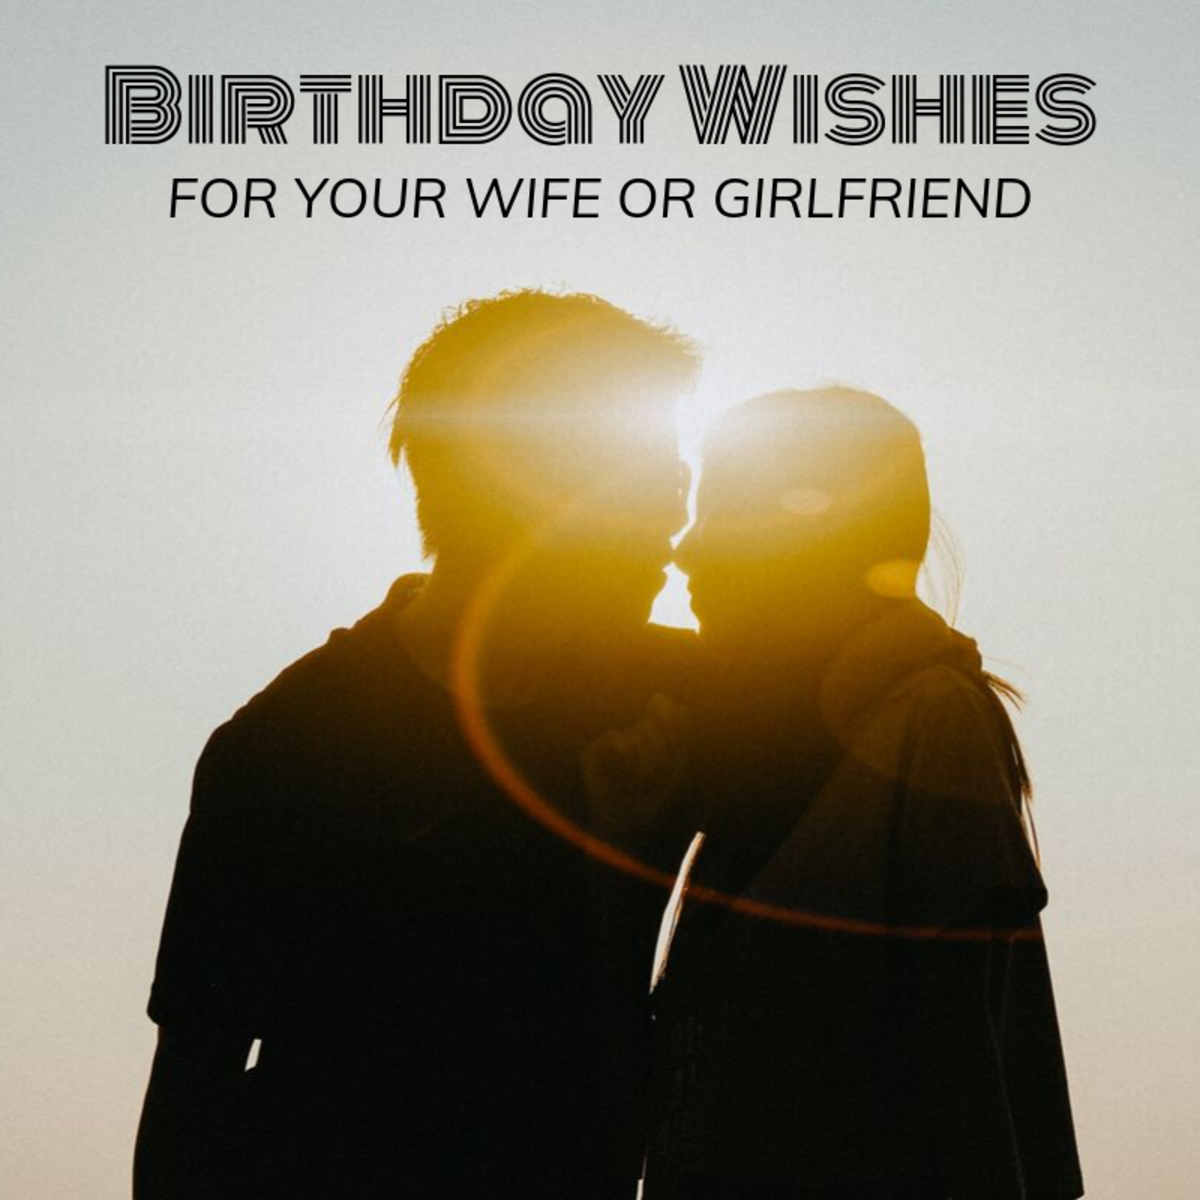 Example Birthday Wishes for a Wife or Girlfriend